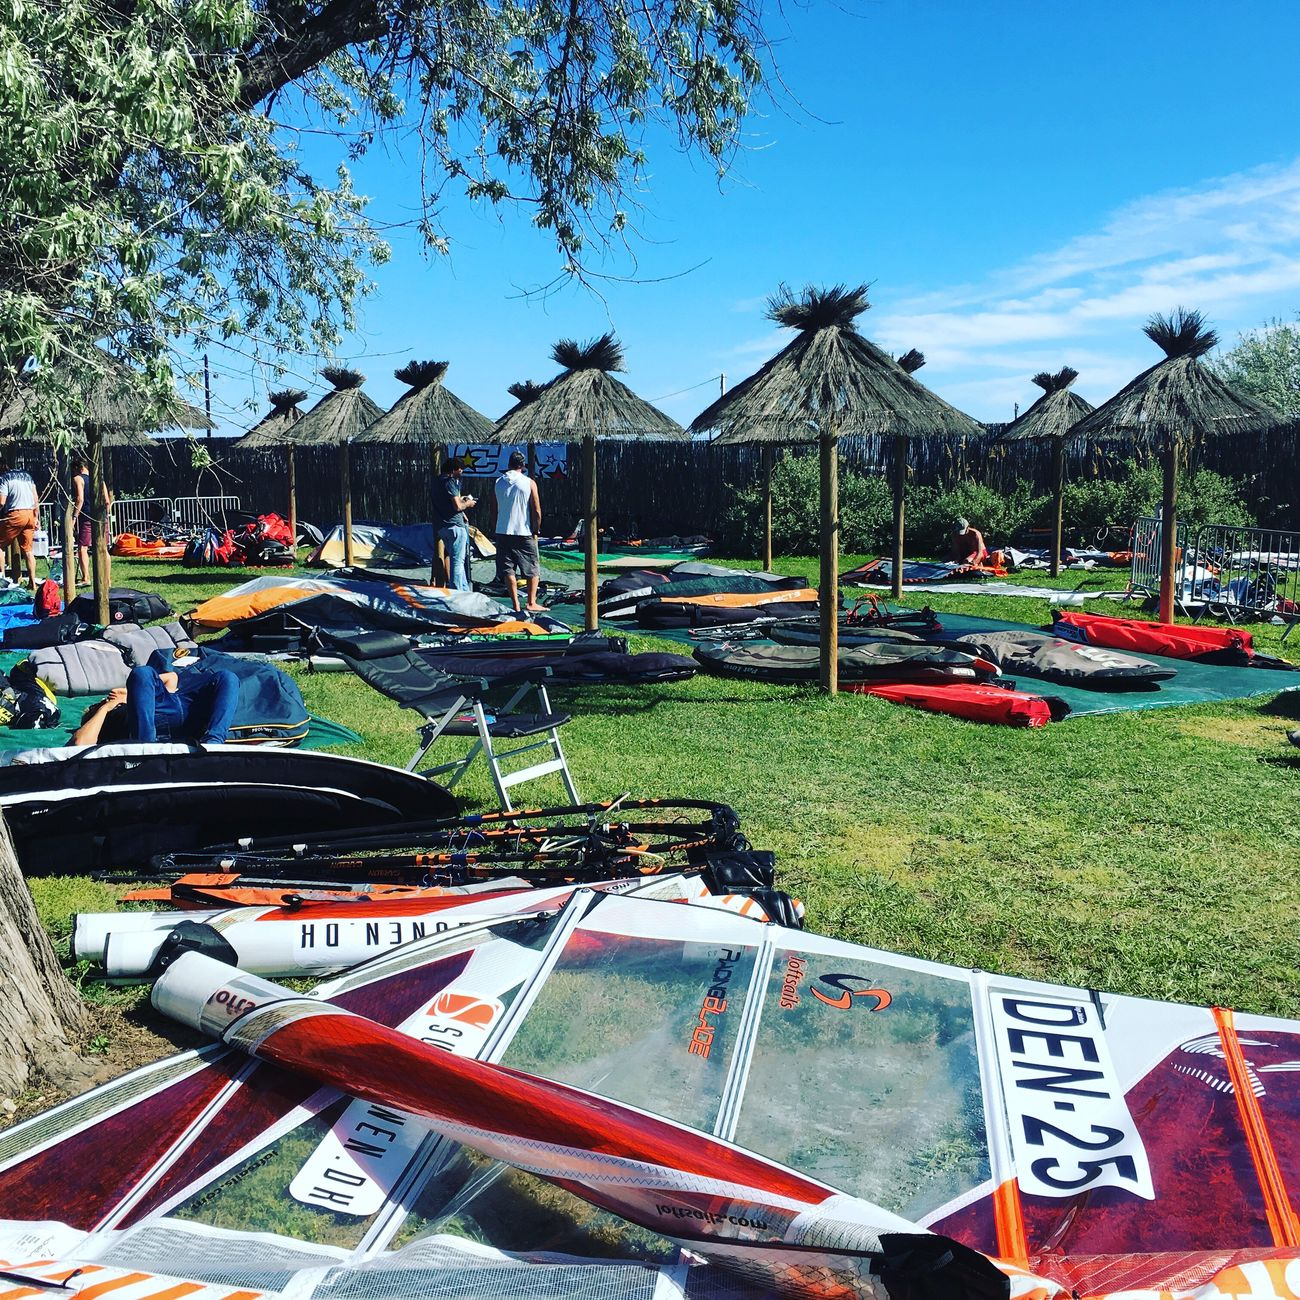 Windsurfing today Day Outdoors Tree Grass Beach Tent No People Nature Sky Windsurf Competition Windsurf Nature See